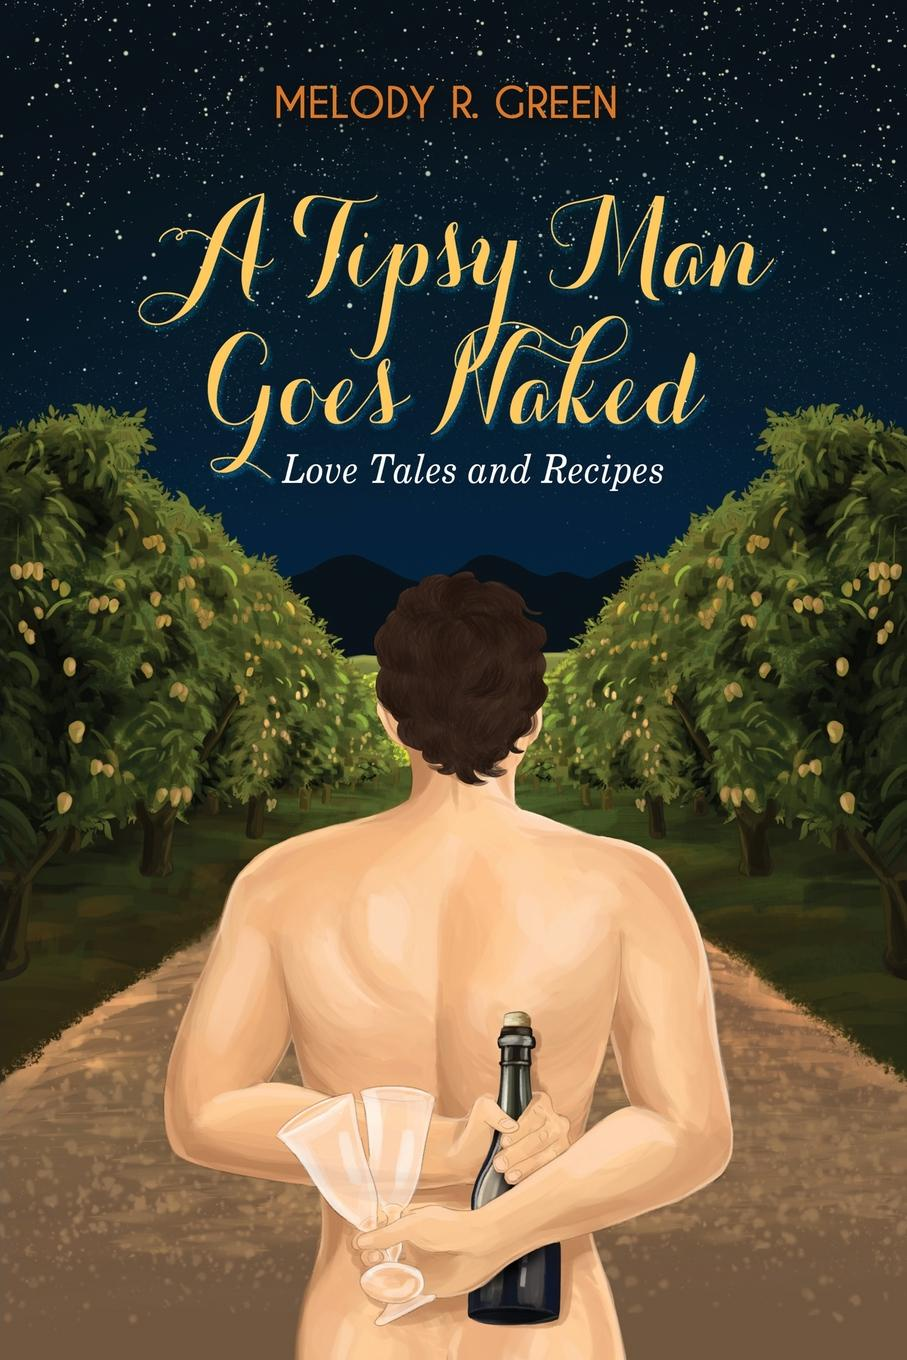 Melody R. Green A Tipsy Man Goes Naked gertz gertcel davydov akiva and rachel one ofthe greatest love stories ofalltime